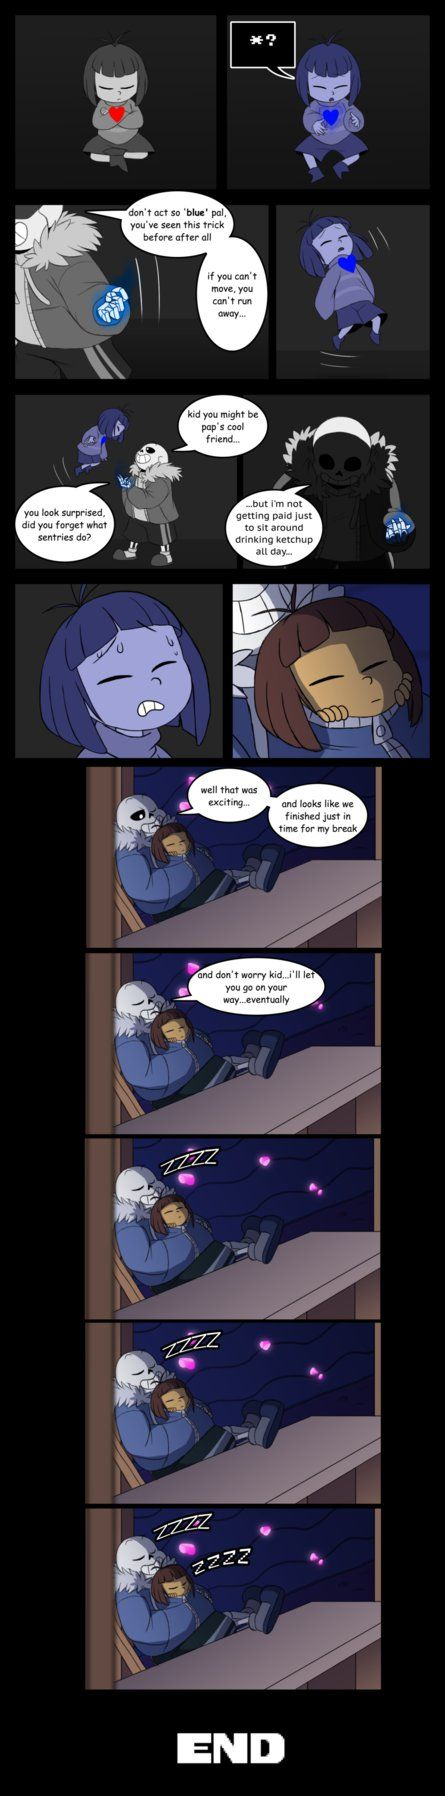 """not an April Fools joke either X3 just the first page of a mini comic  basically my comic representation of the """"Pacifist Sans fight."""" a fan video on YouTube. Oh no TC's starting another ..."""